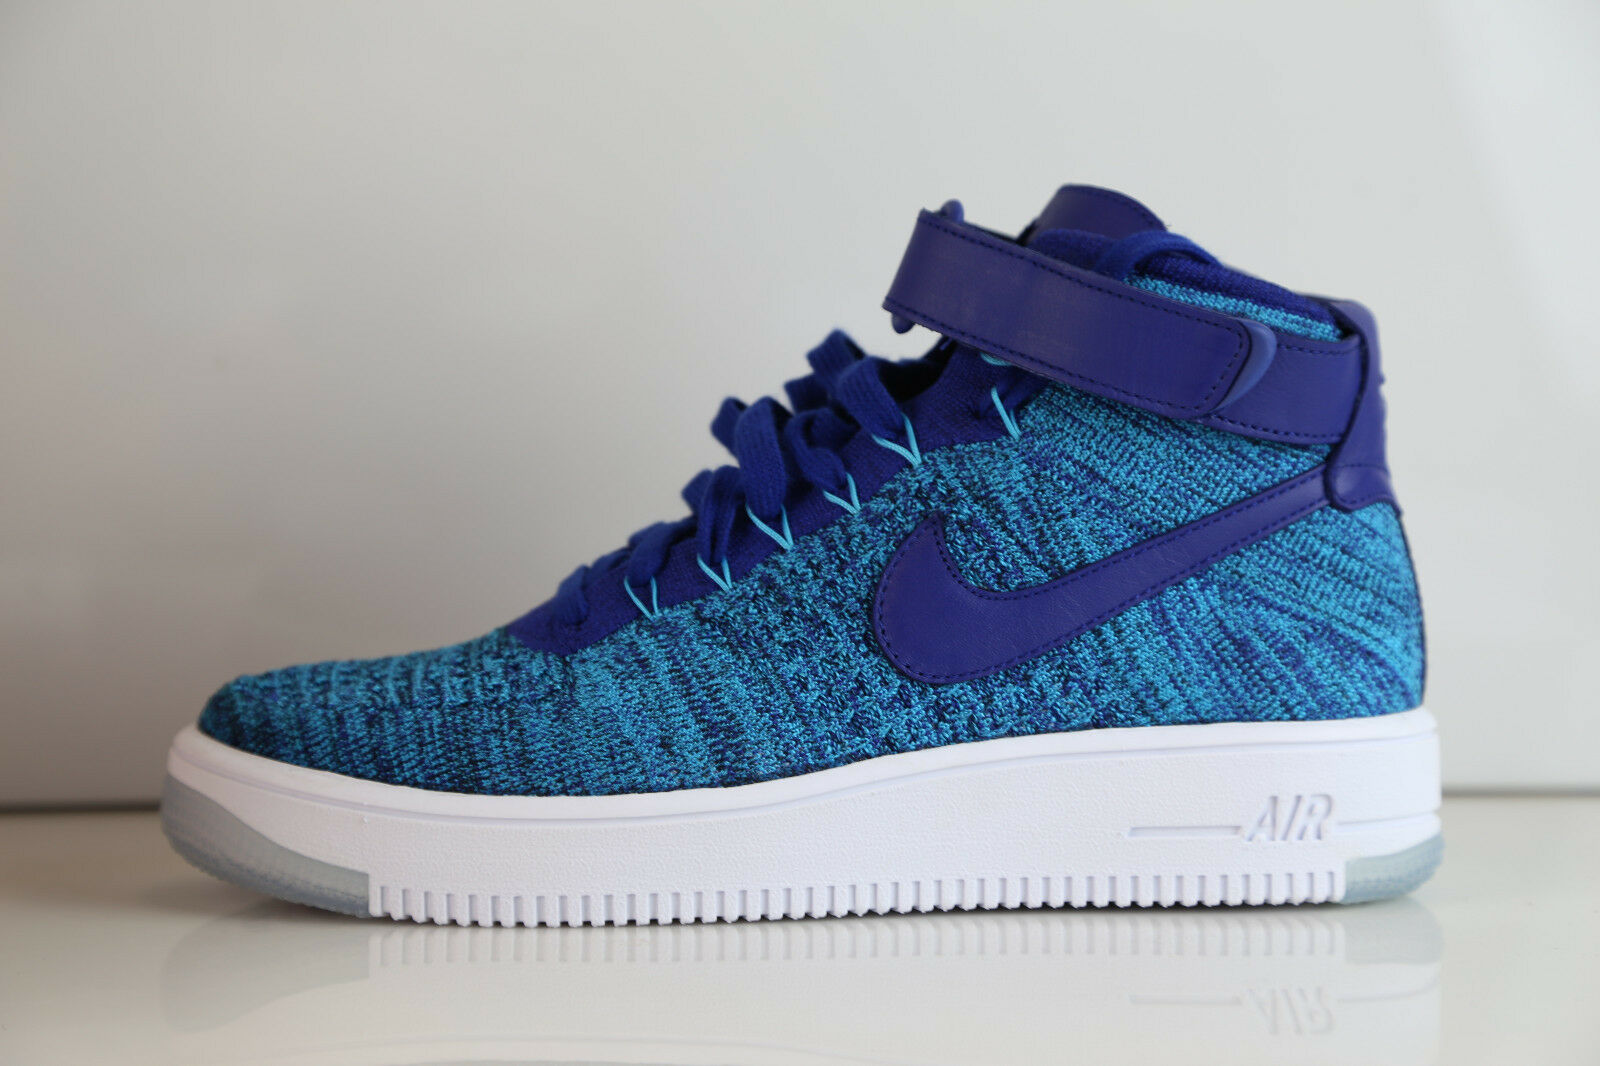 Nike Womens AF1 Ultra Flyknit bluee Lagoon  818018-400 Air Force 6.5-10